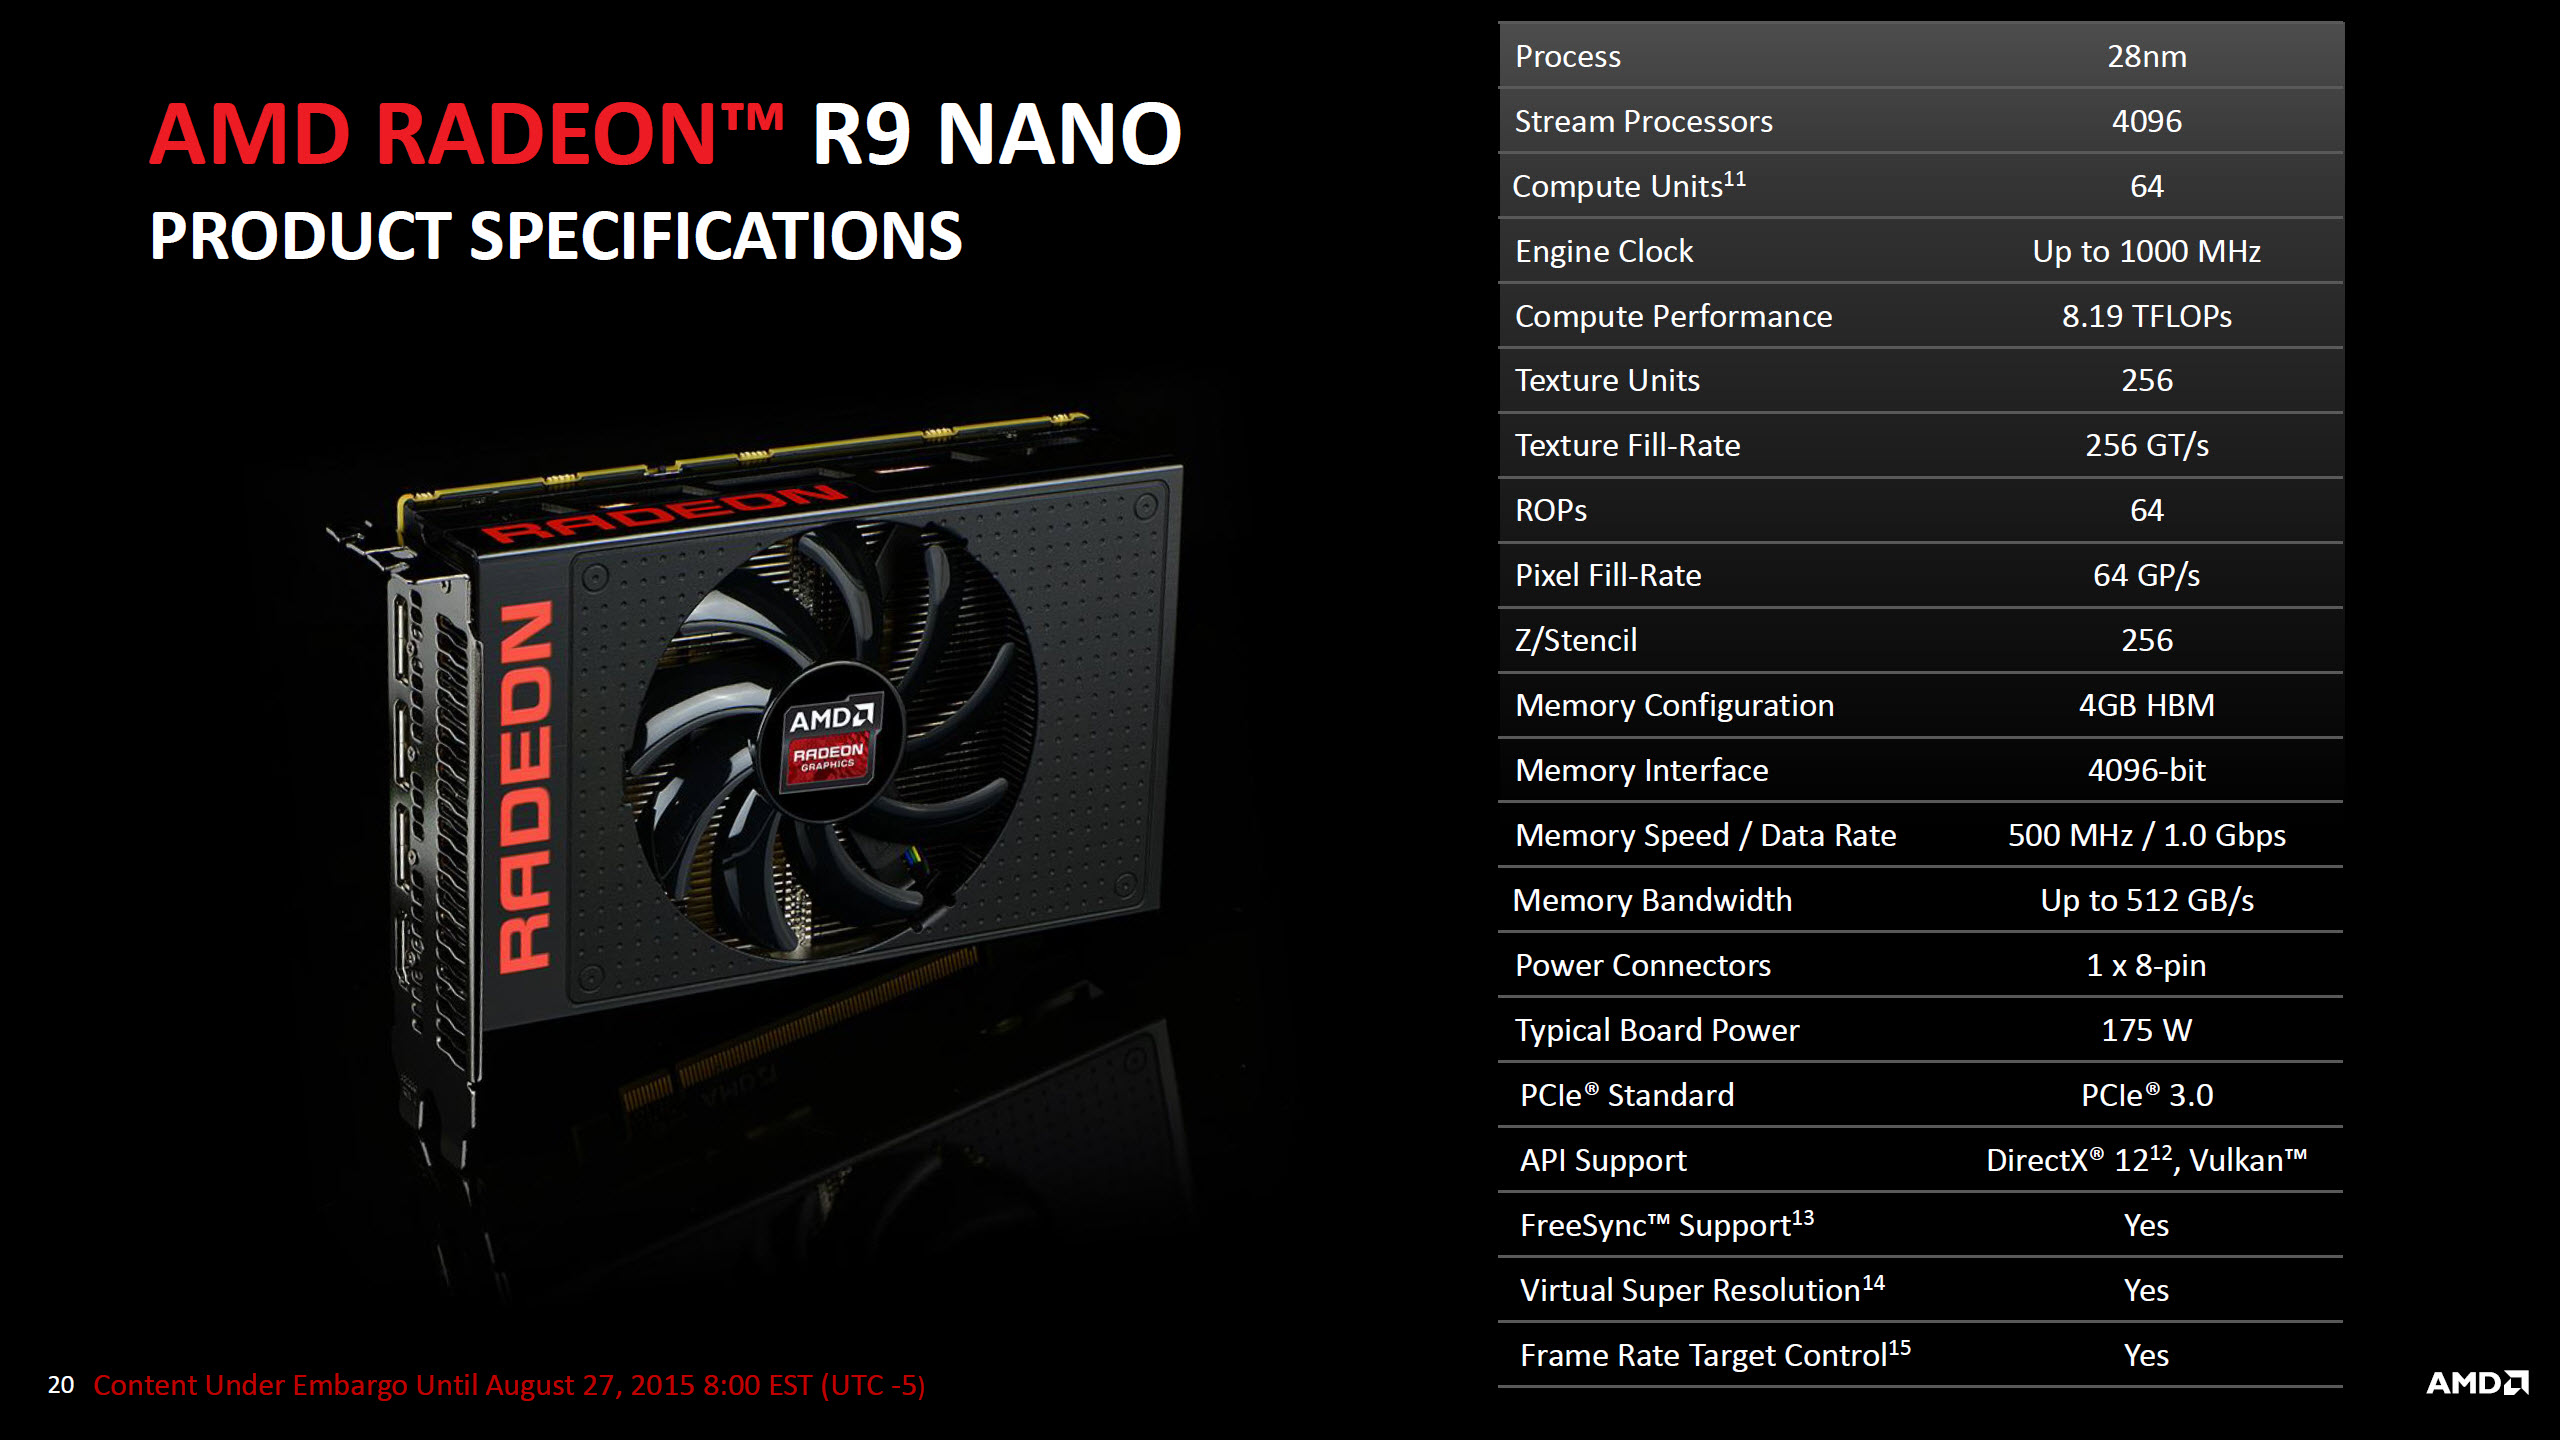 AMD Radeon R9 Nano Specifications Specs